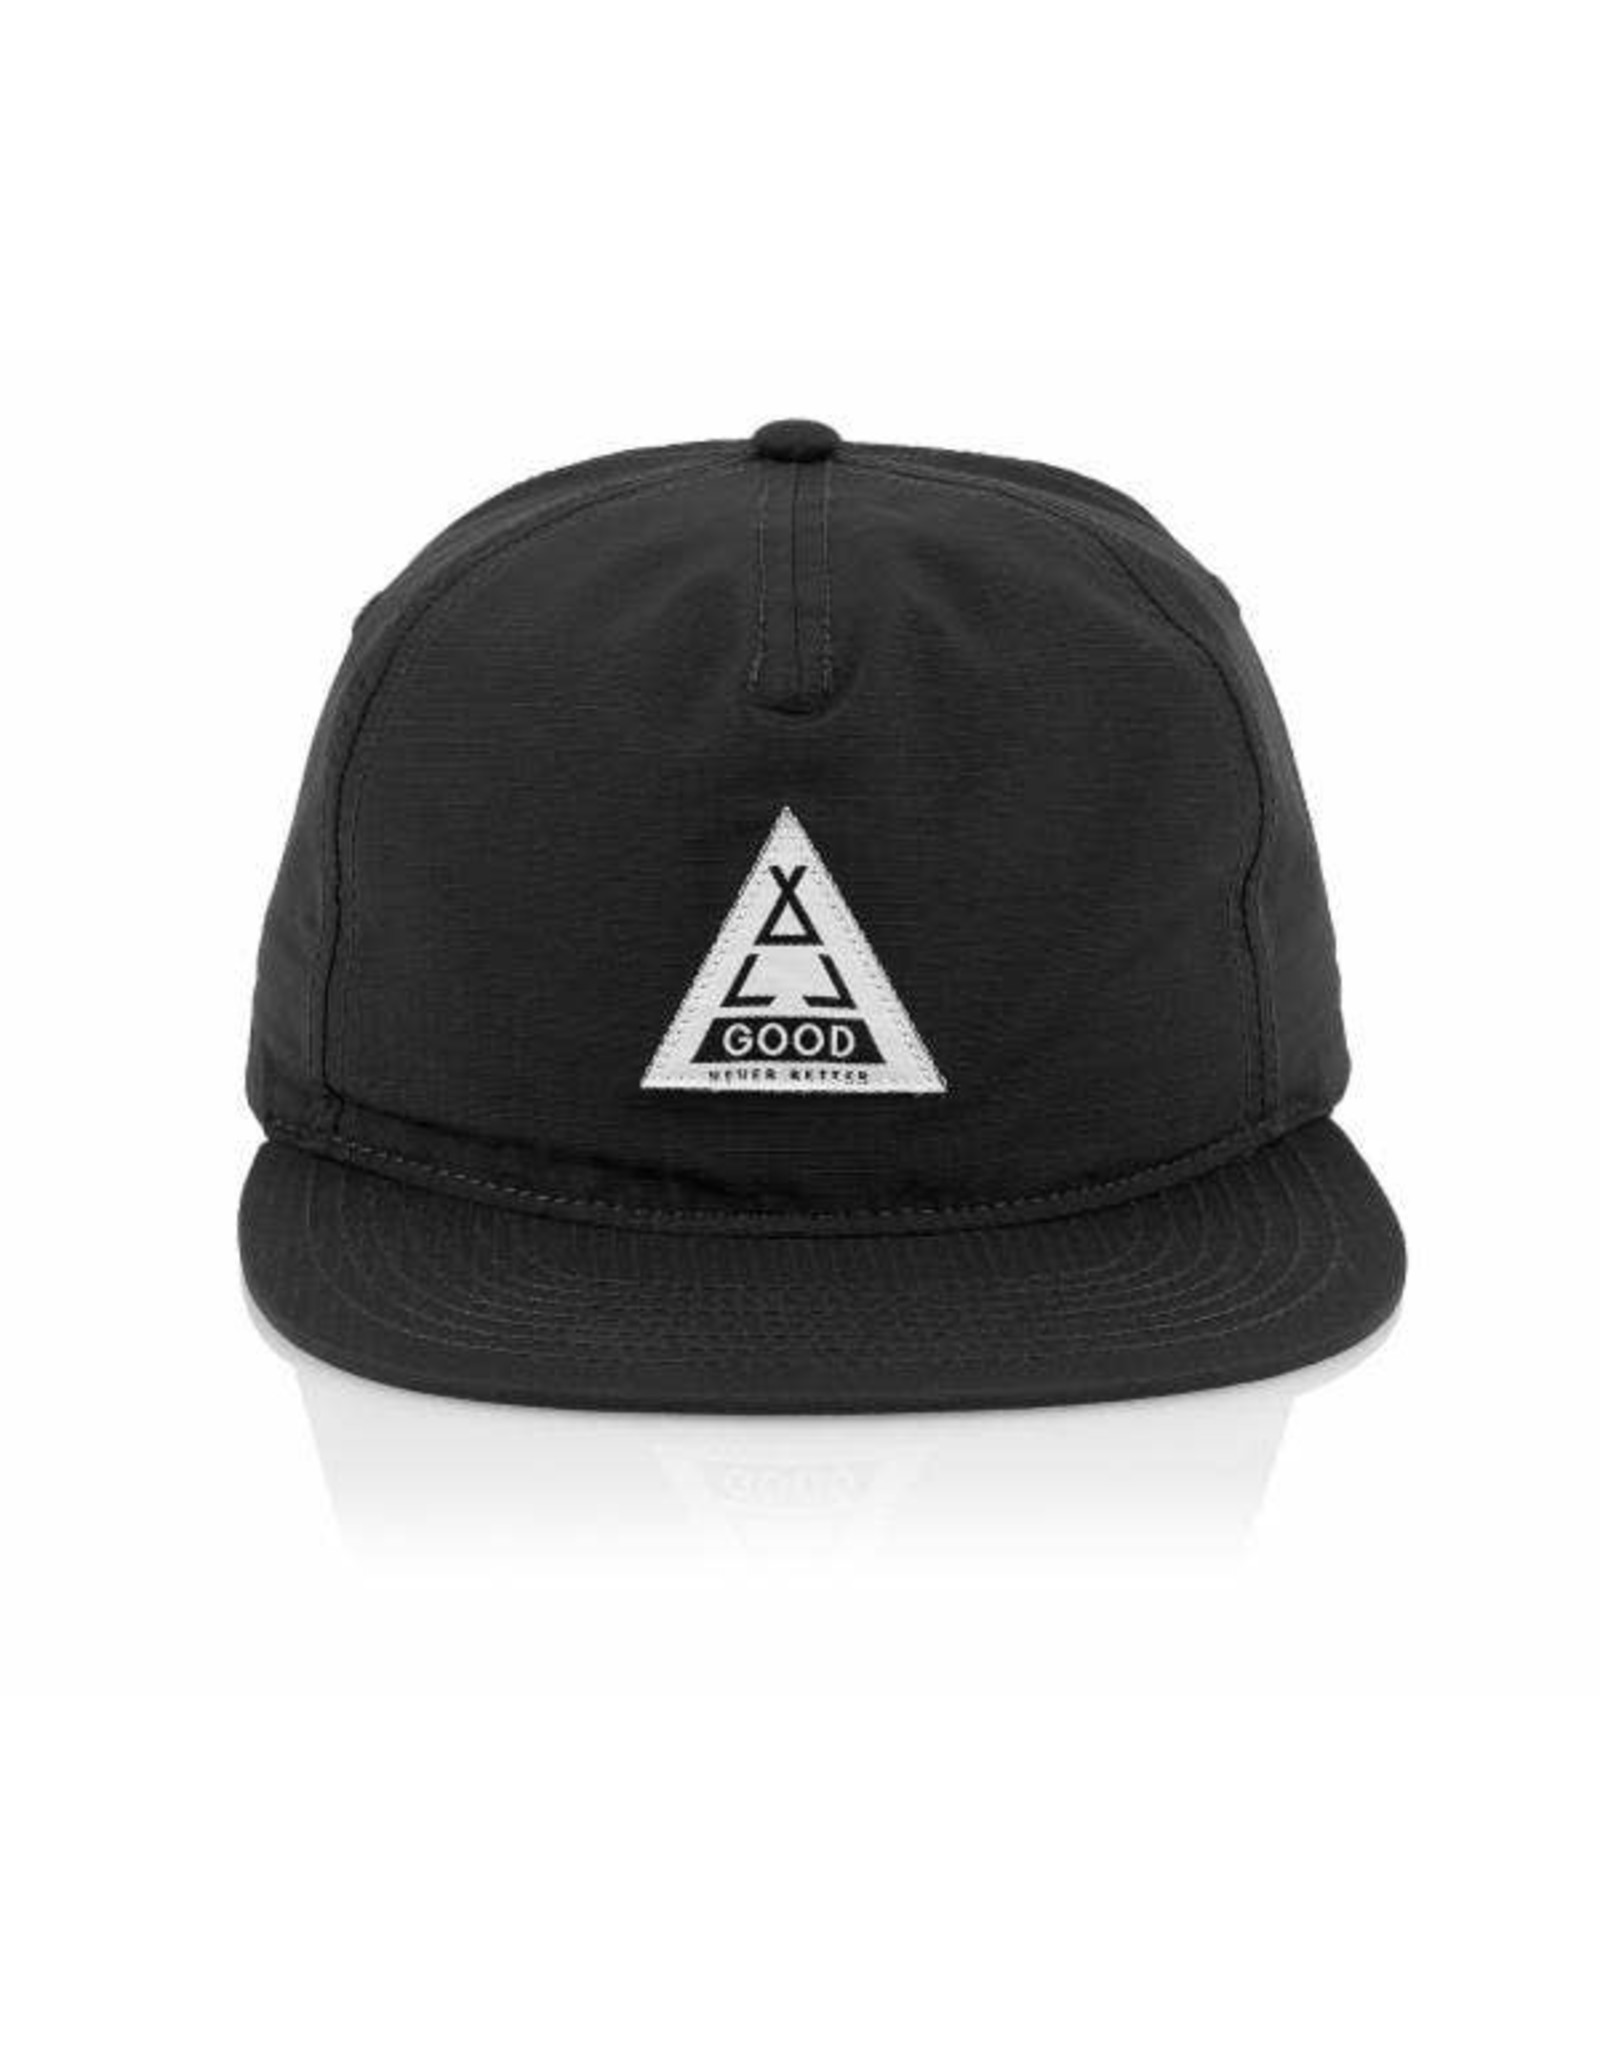 All Good Black Tented US Hat